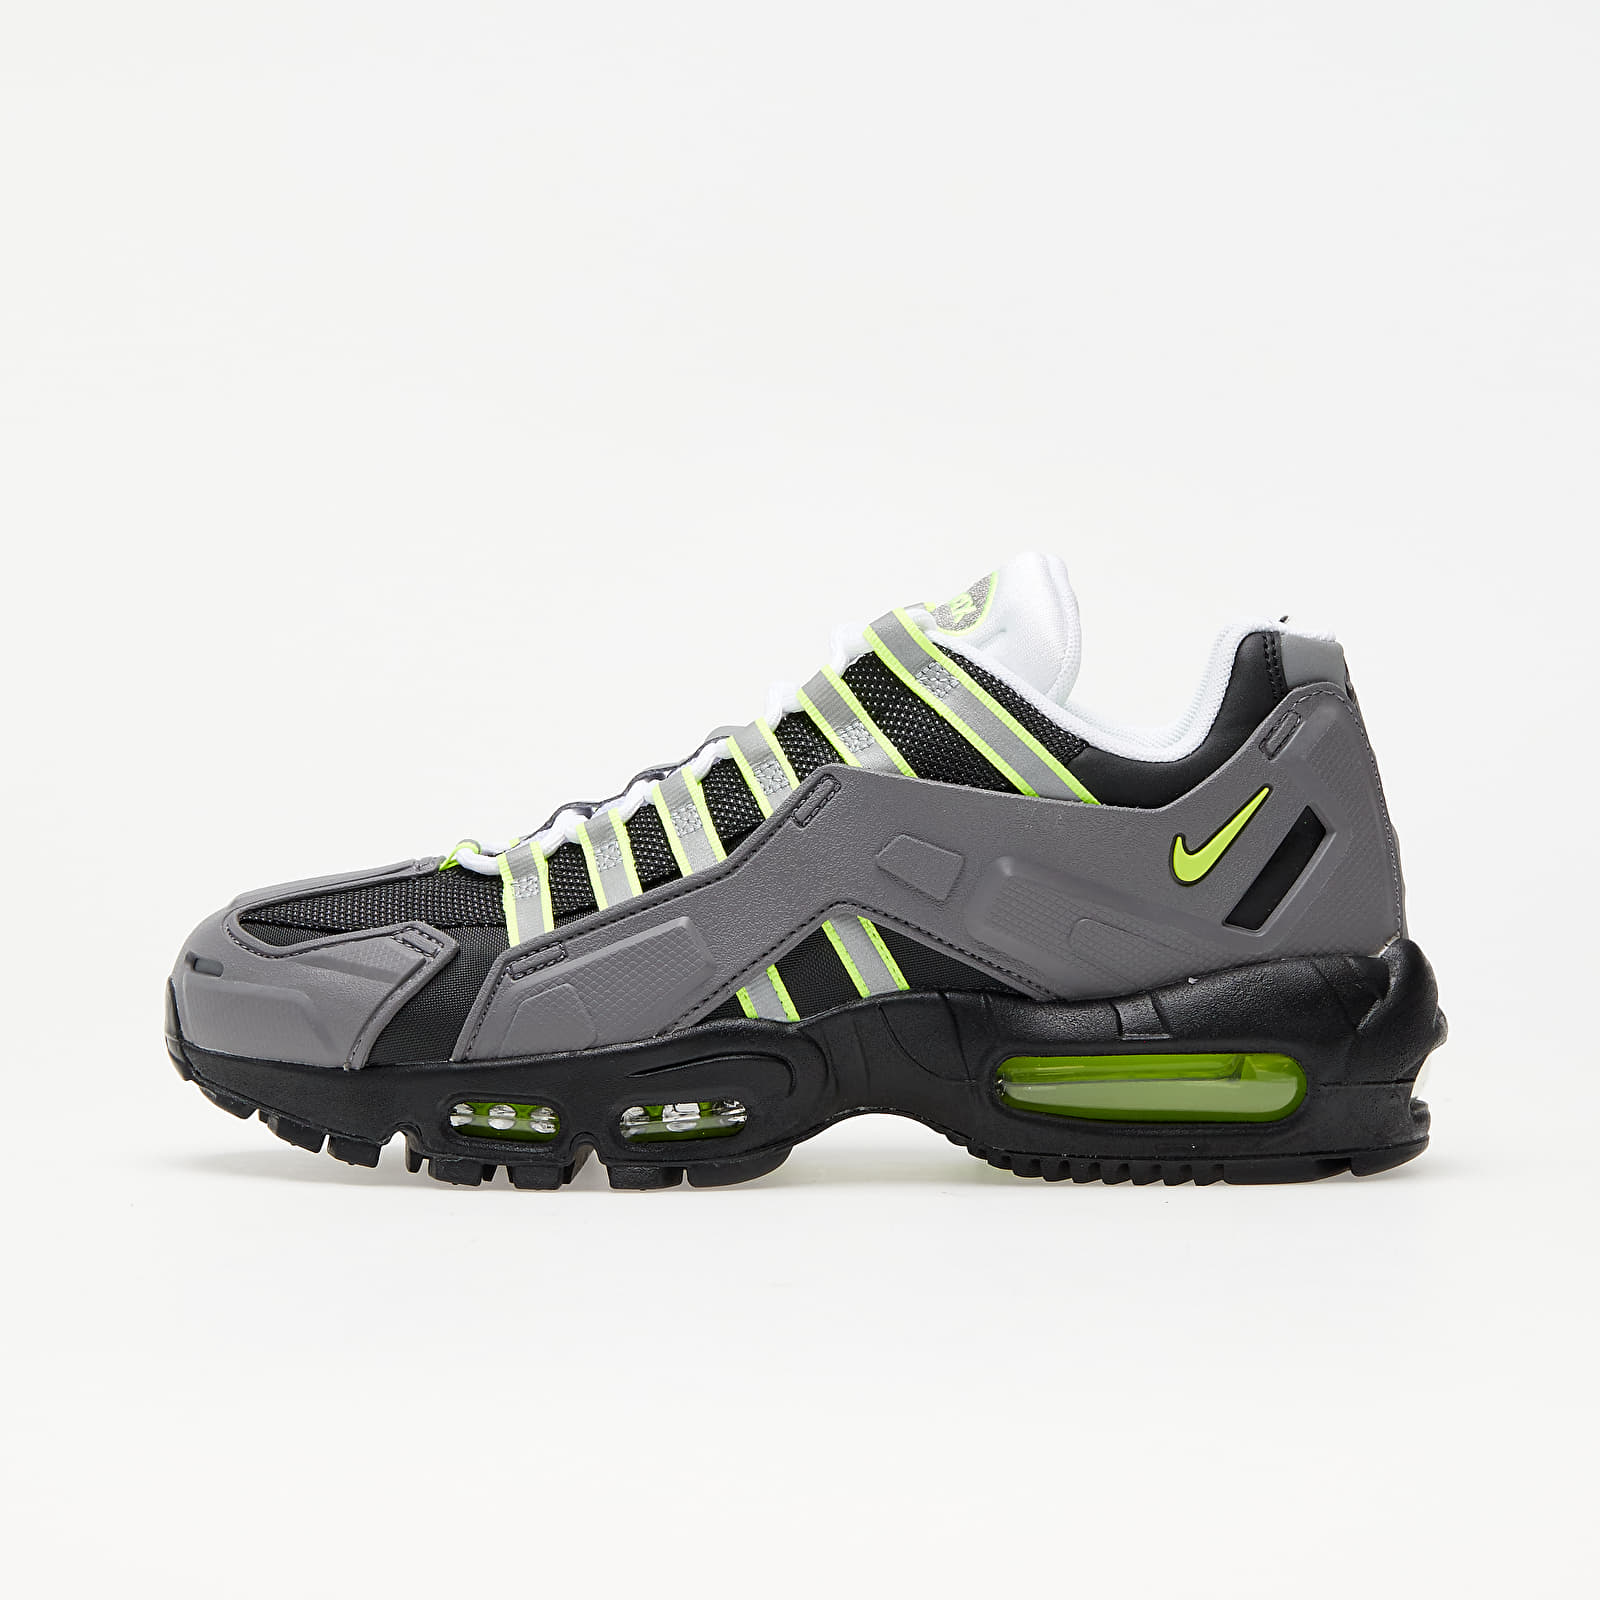 Nike Air Max 95 NDSTRKT Black/ Neon Yellow-Medium Grey EUR 41